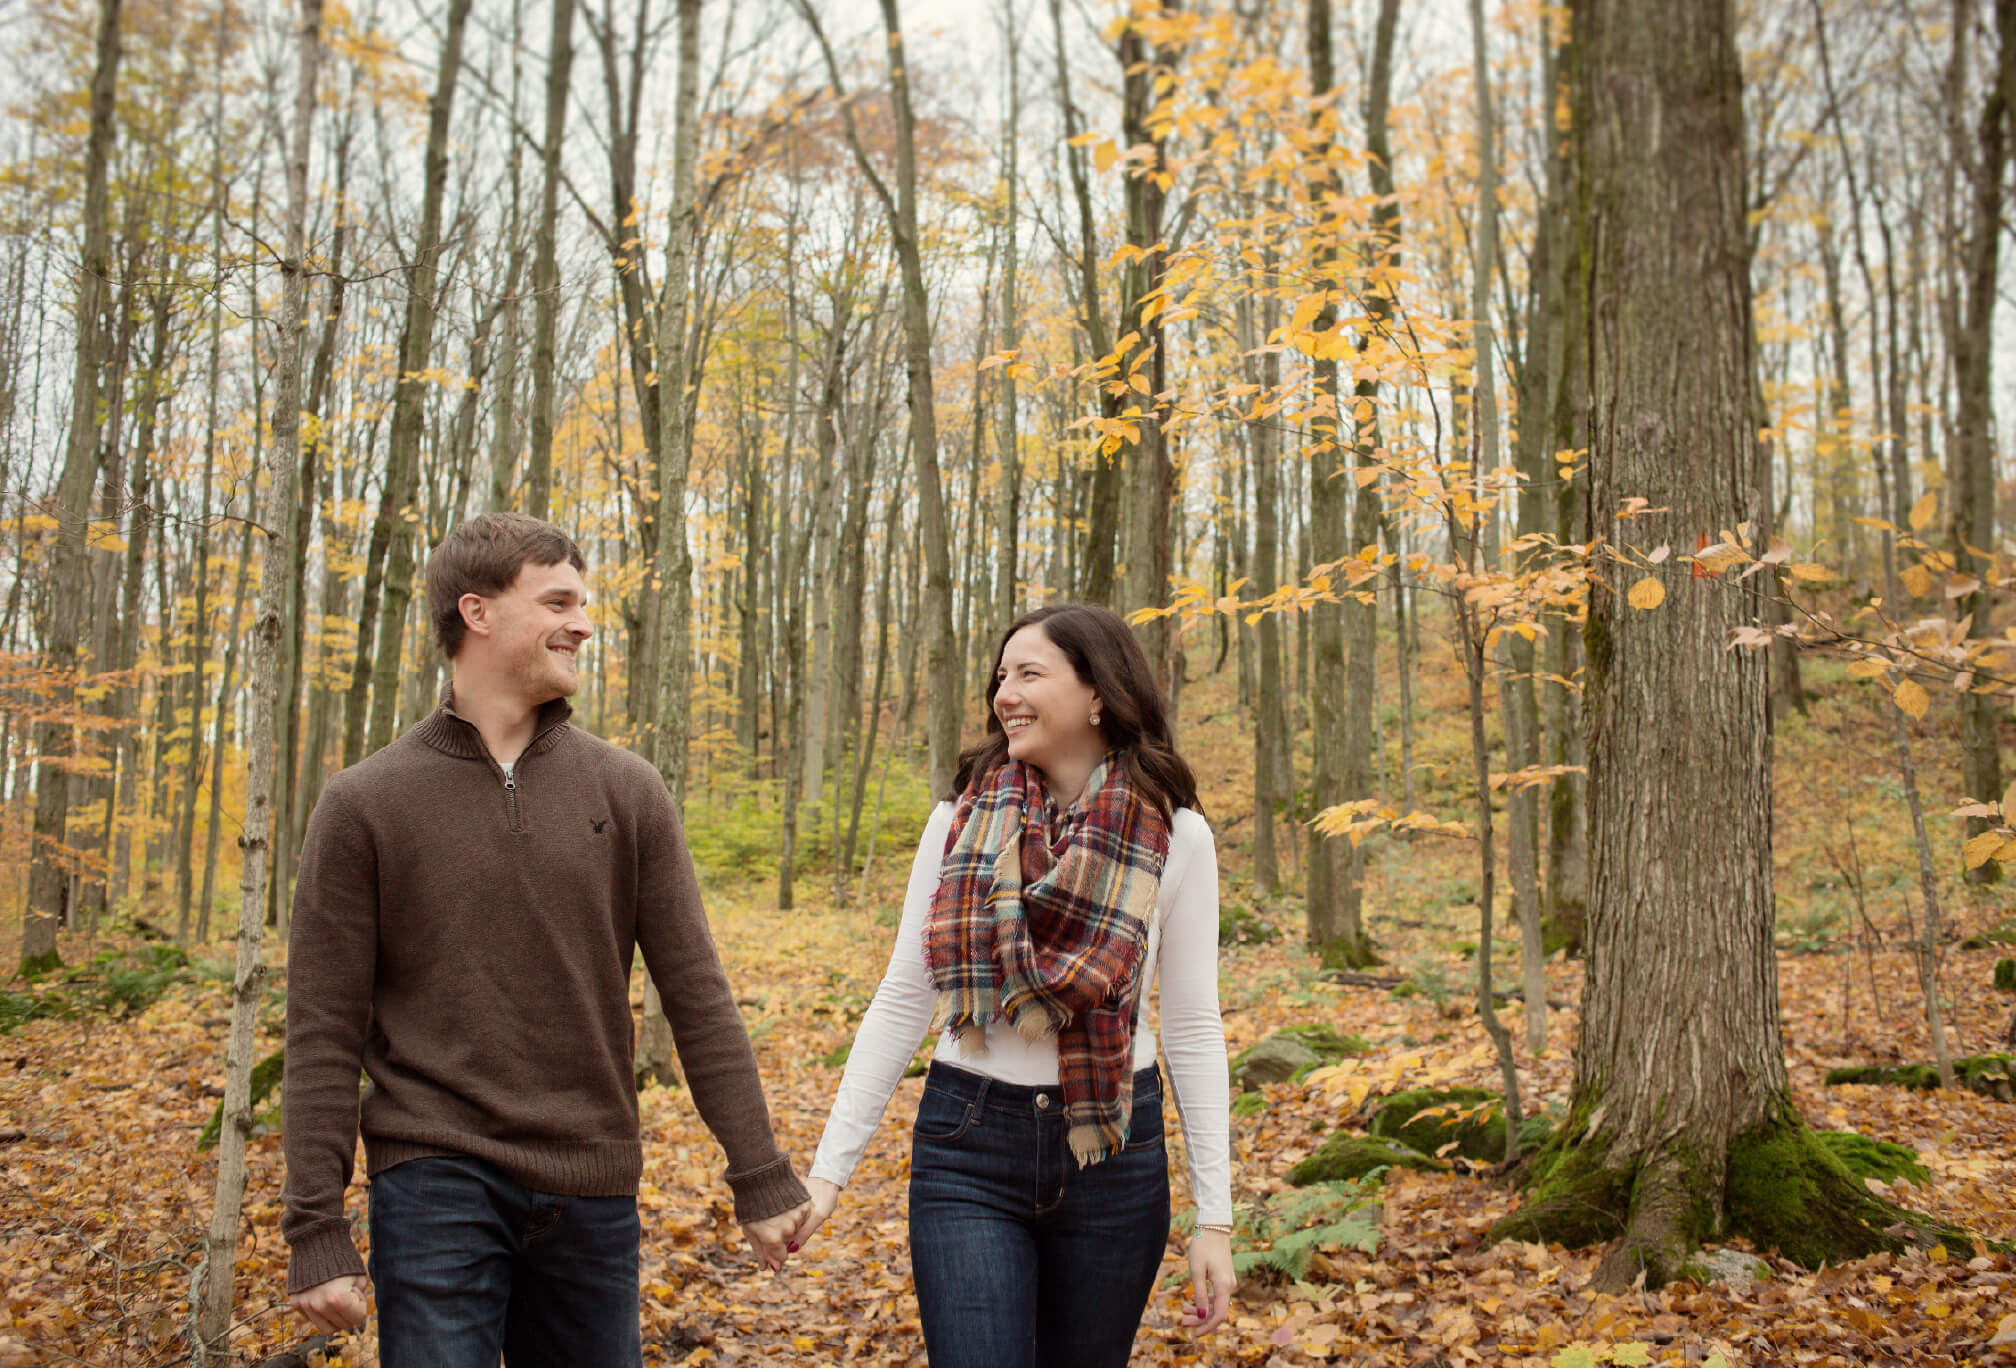 couple walking through forest in fall